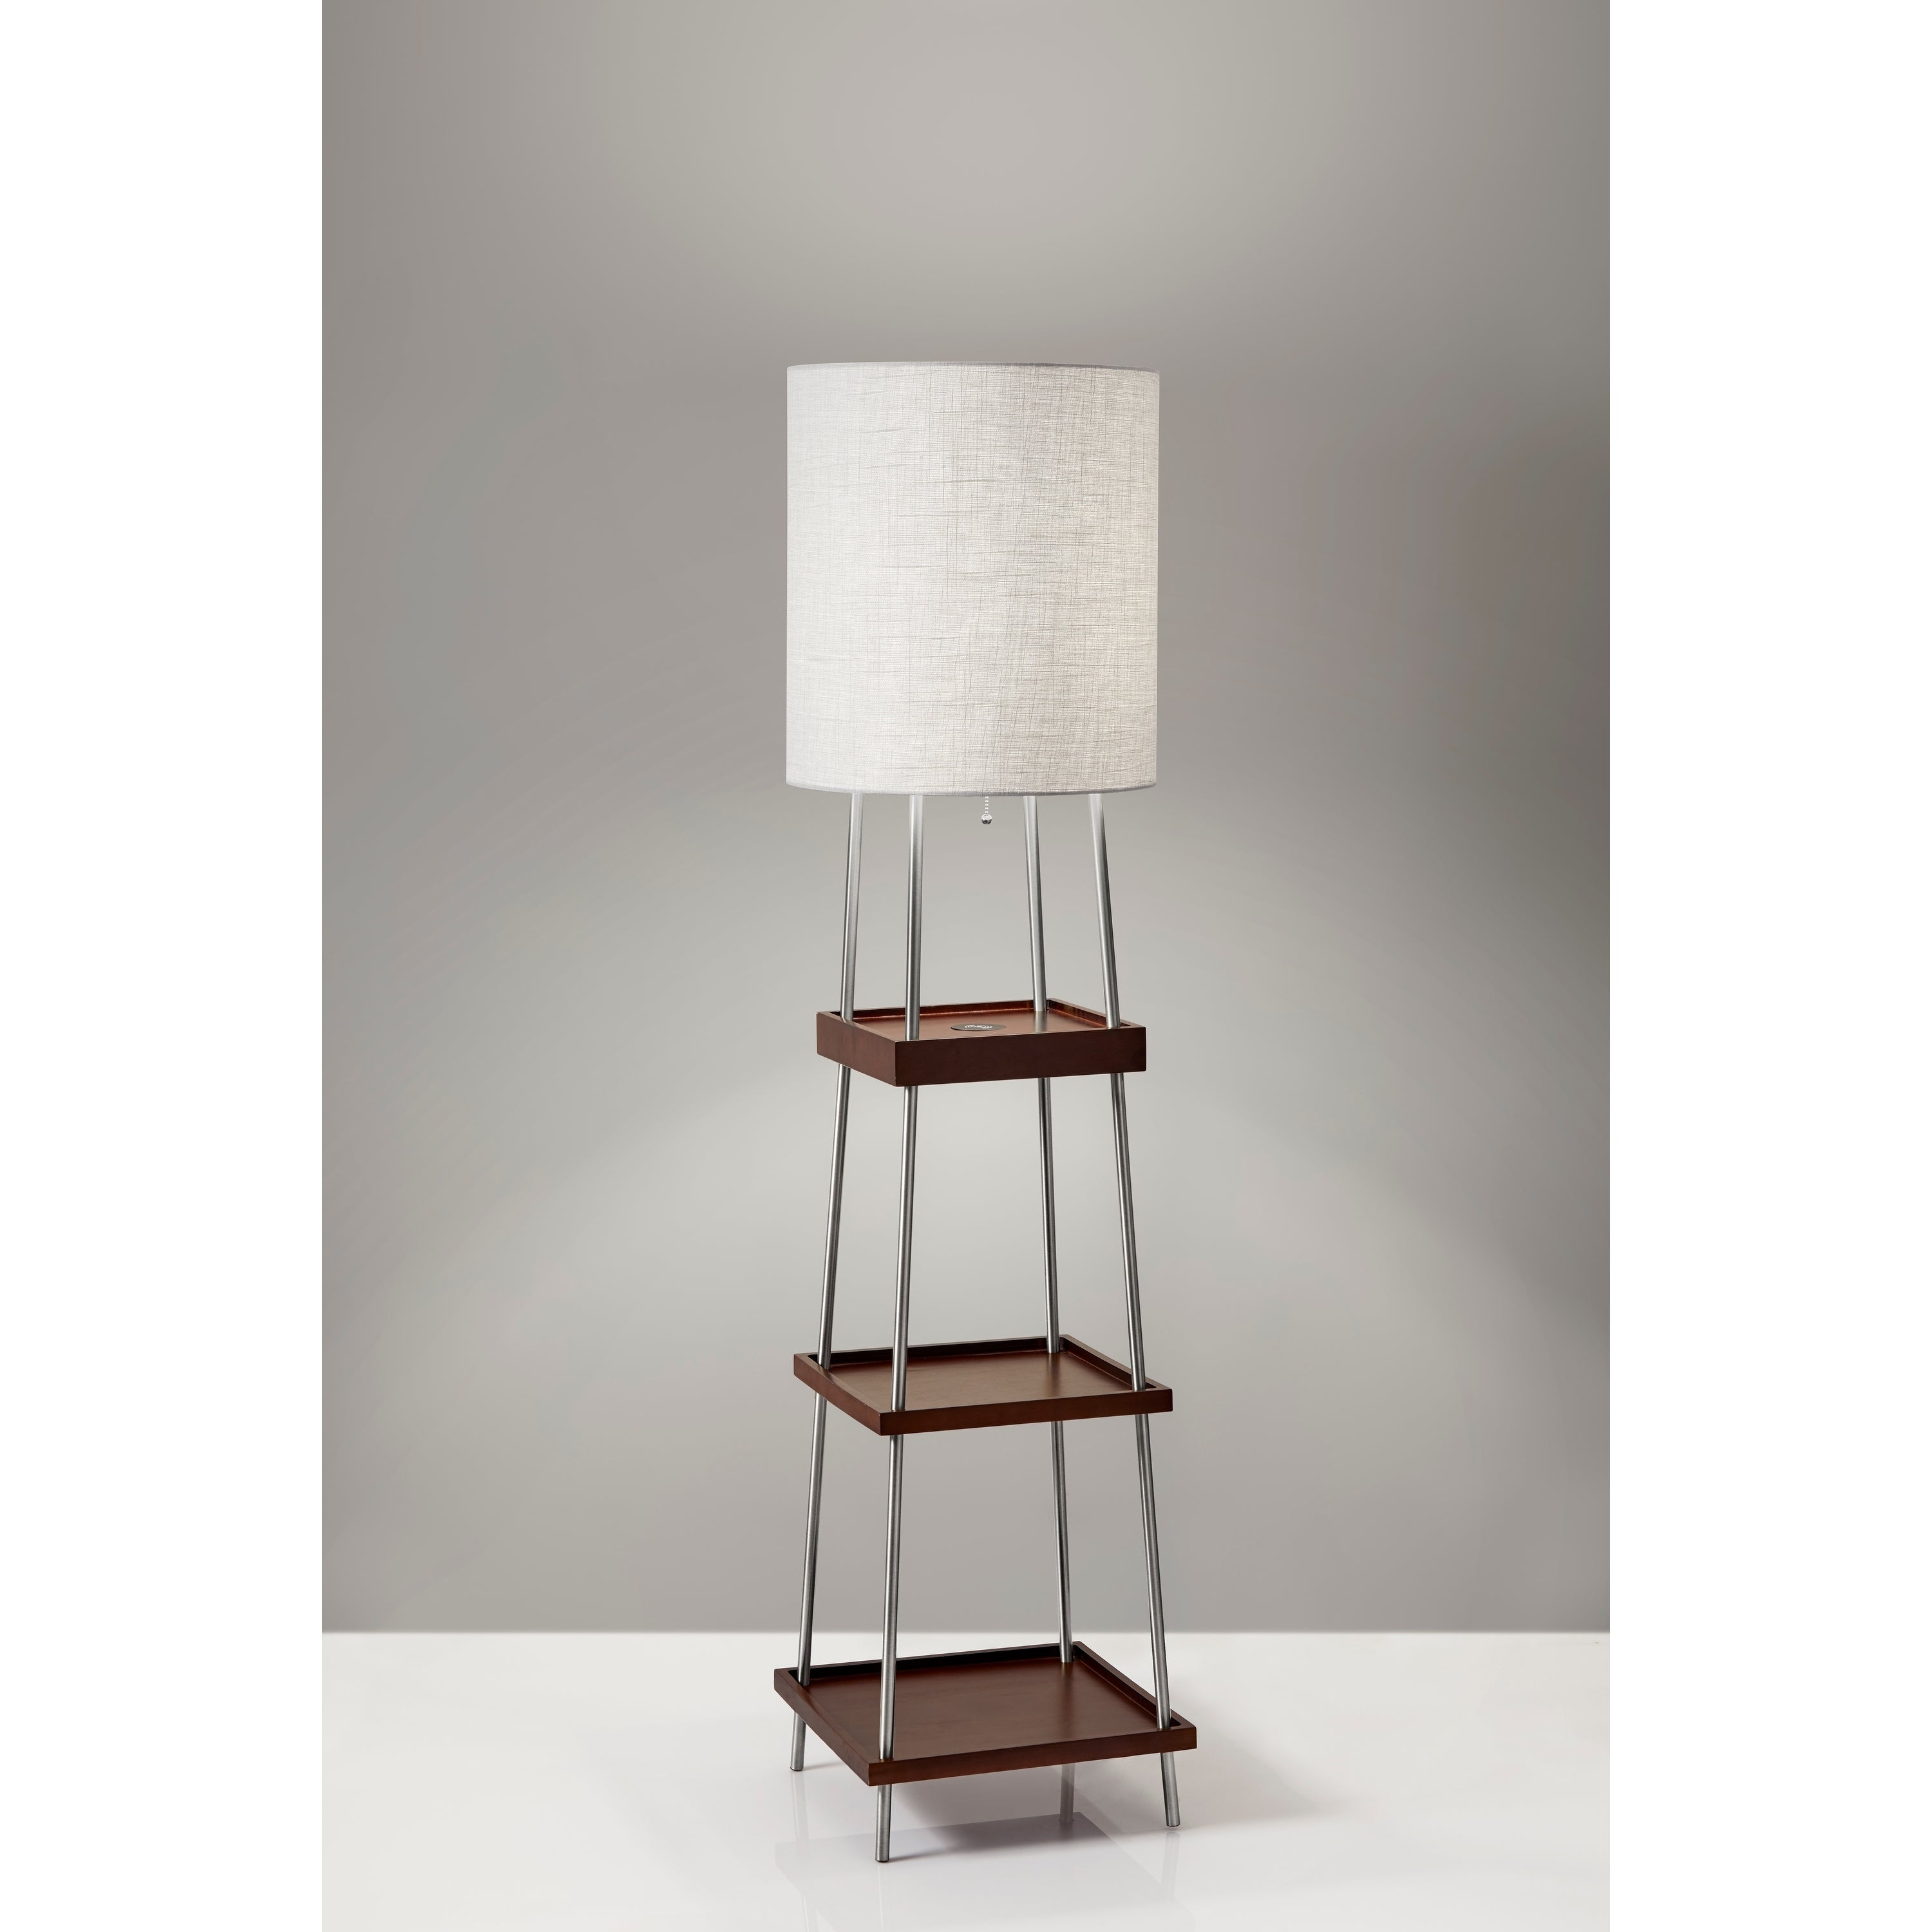 Image of: Shop Black Friday Deals On Adesso Henry Brushed Steel And Walnut Poplar Wood Shelf Floor Lamp With Adessocharge Wireless Charging Pad Overstock 23034068